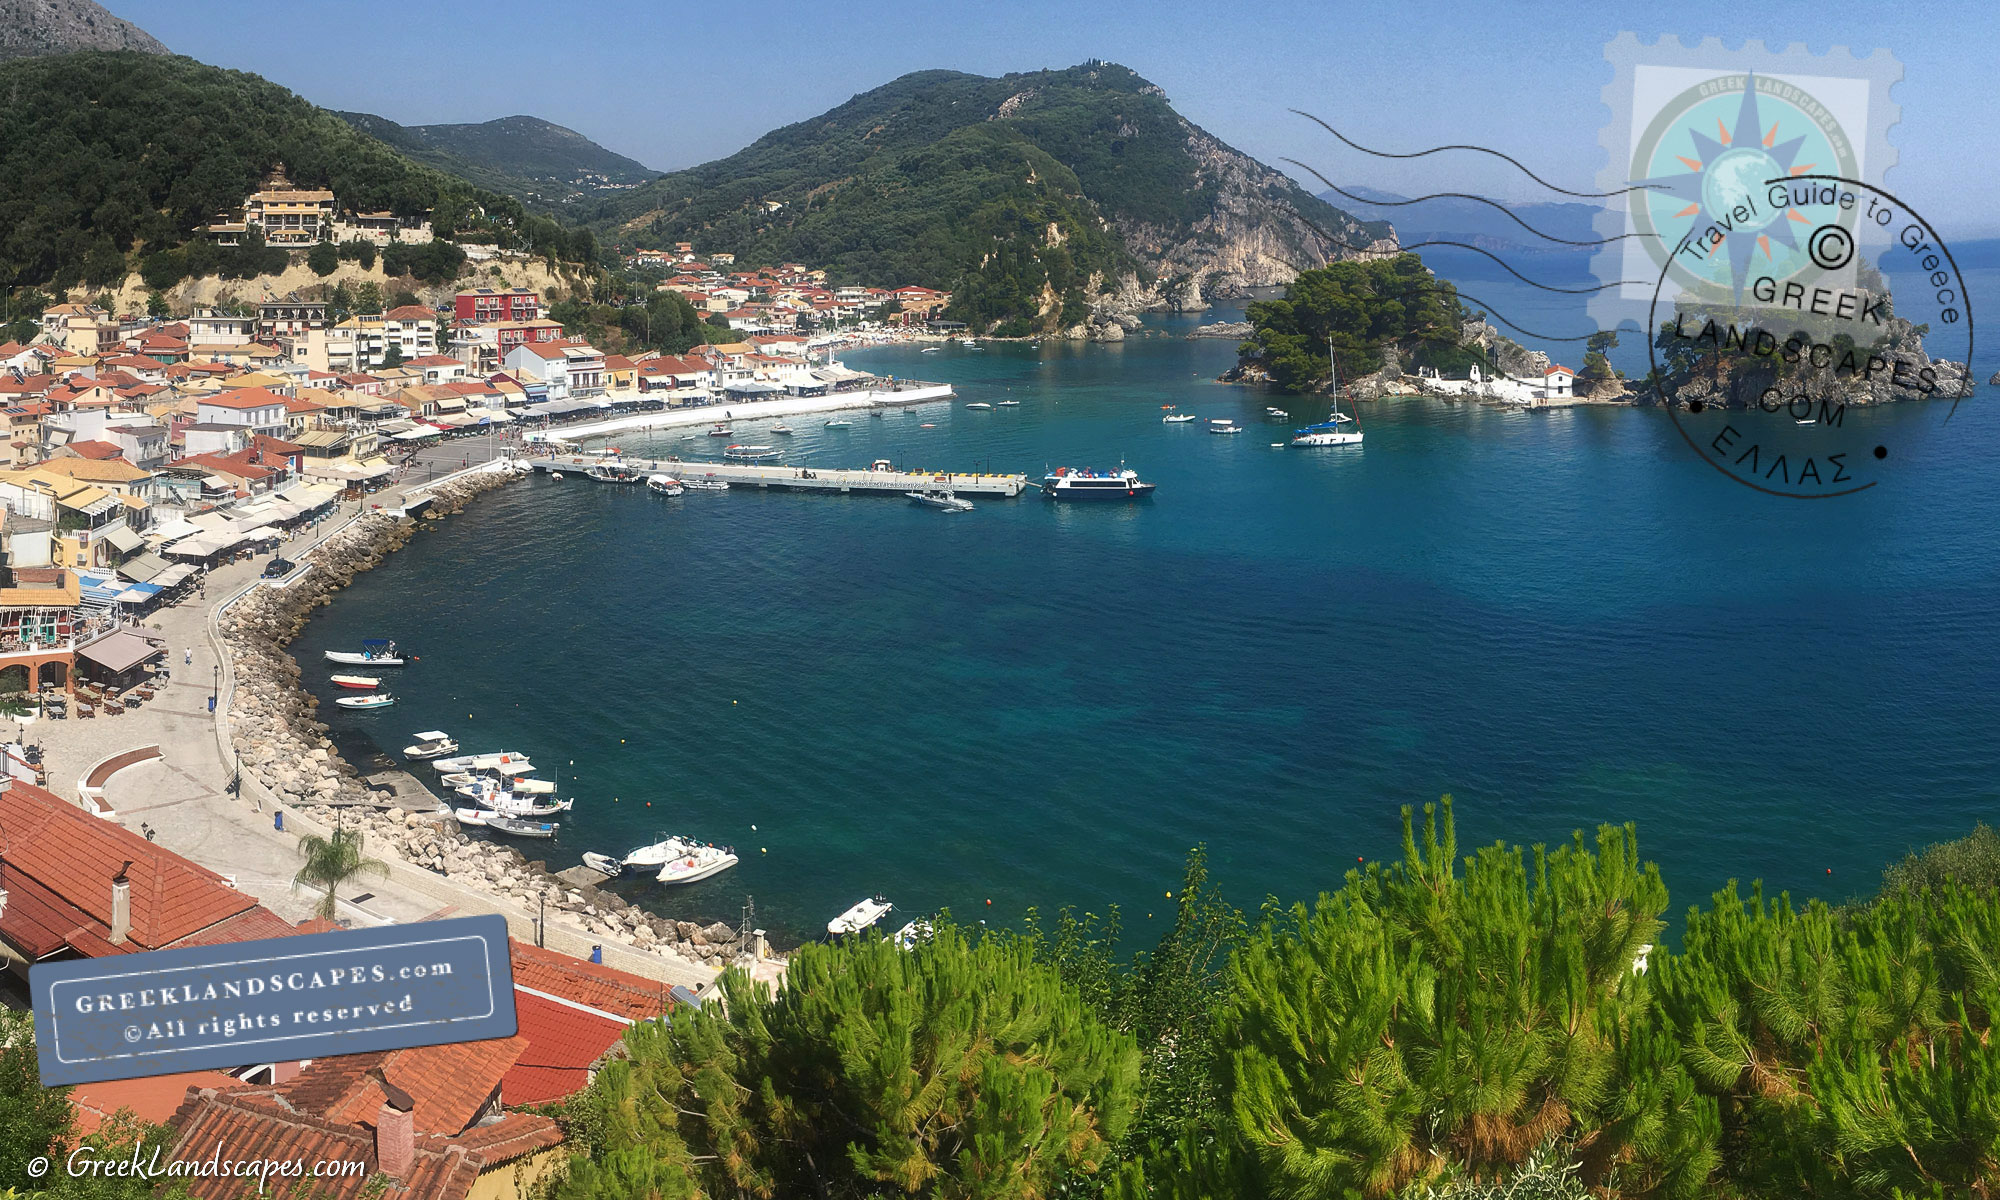 View of Parga town with Panagia islet and boats in the harbor